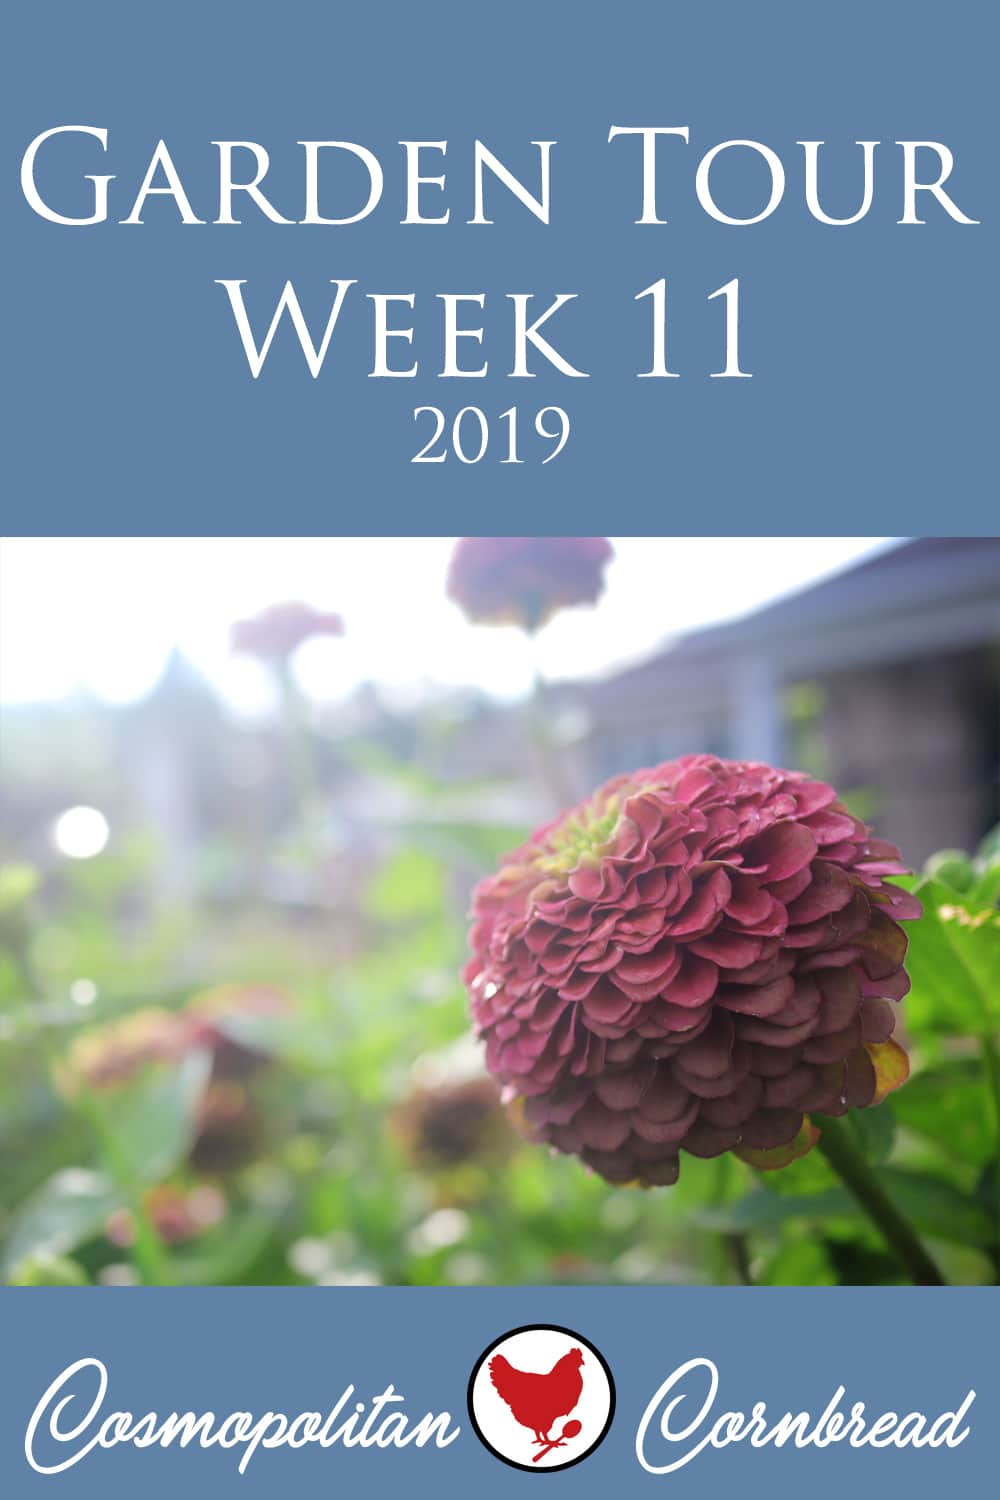 My schedule got a little thrown off this weekend, so today for the Monday episode, I'm sharing the week 11 garden tour. Better late than never!